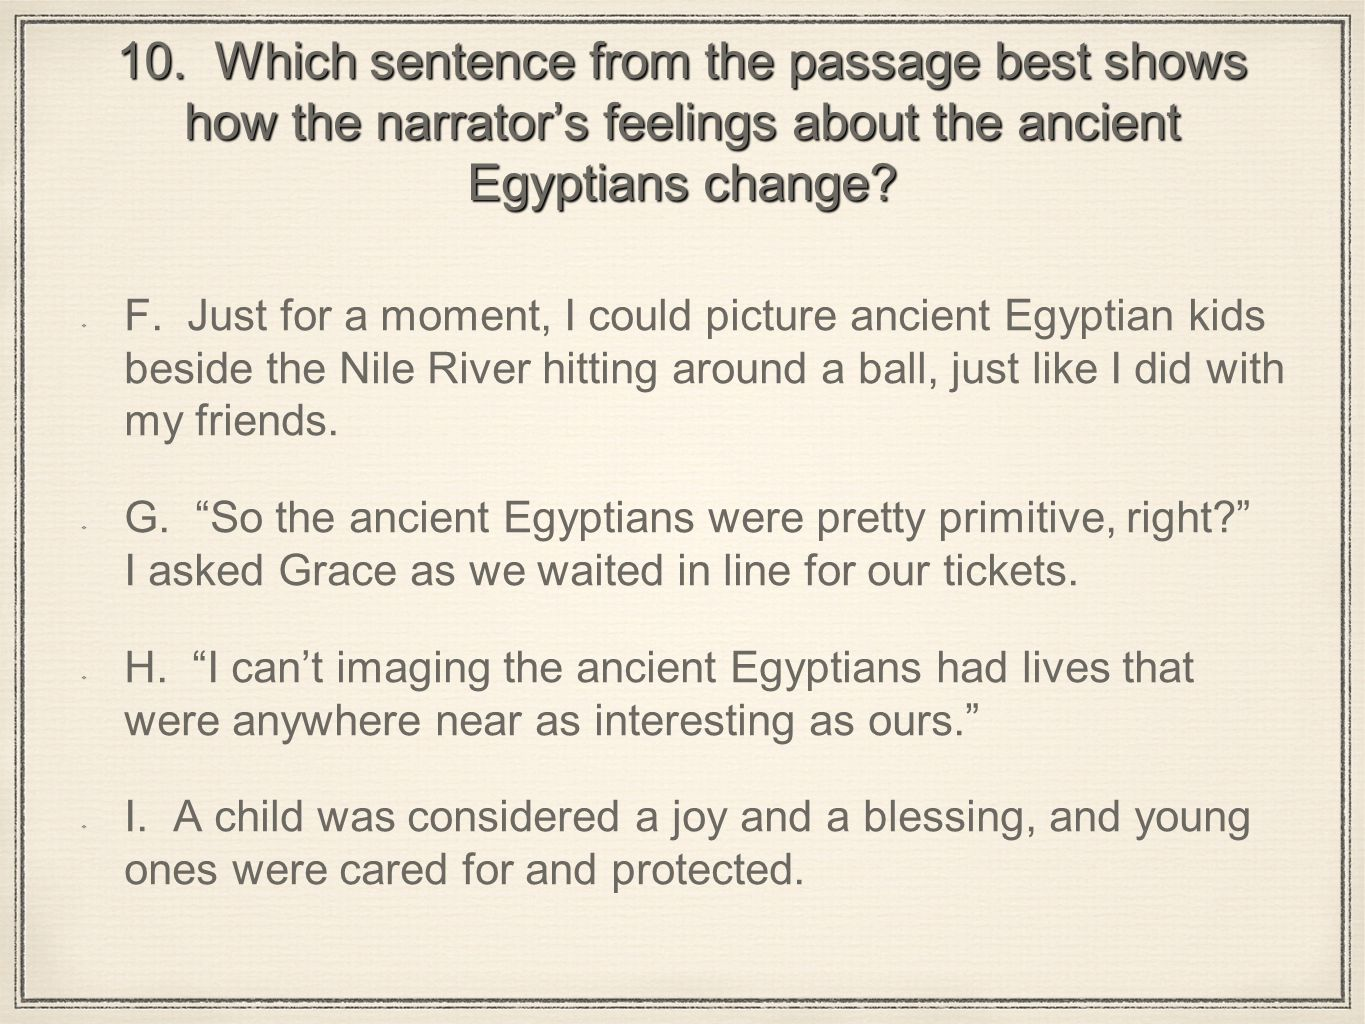 10. Which sentence from the passage best shows how the narrator's feelings about the ancient Egyptians change